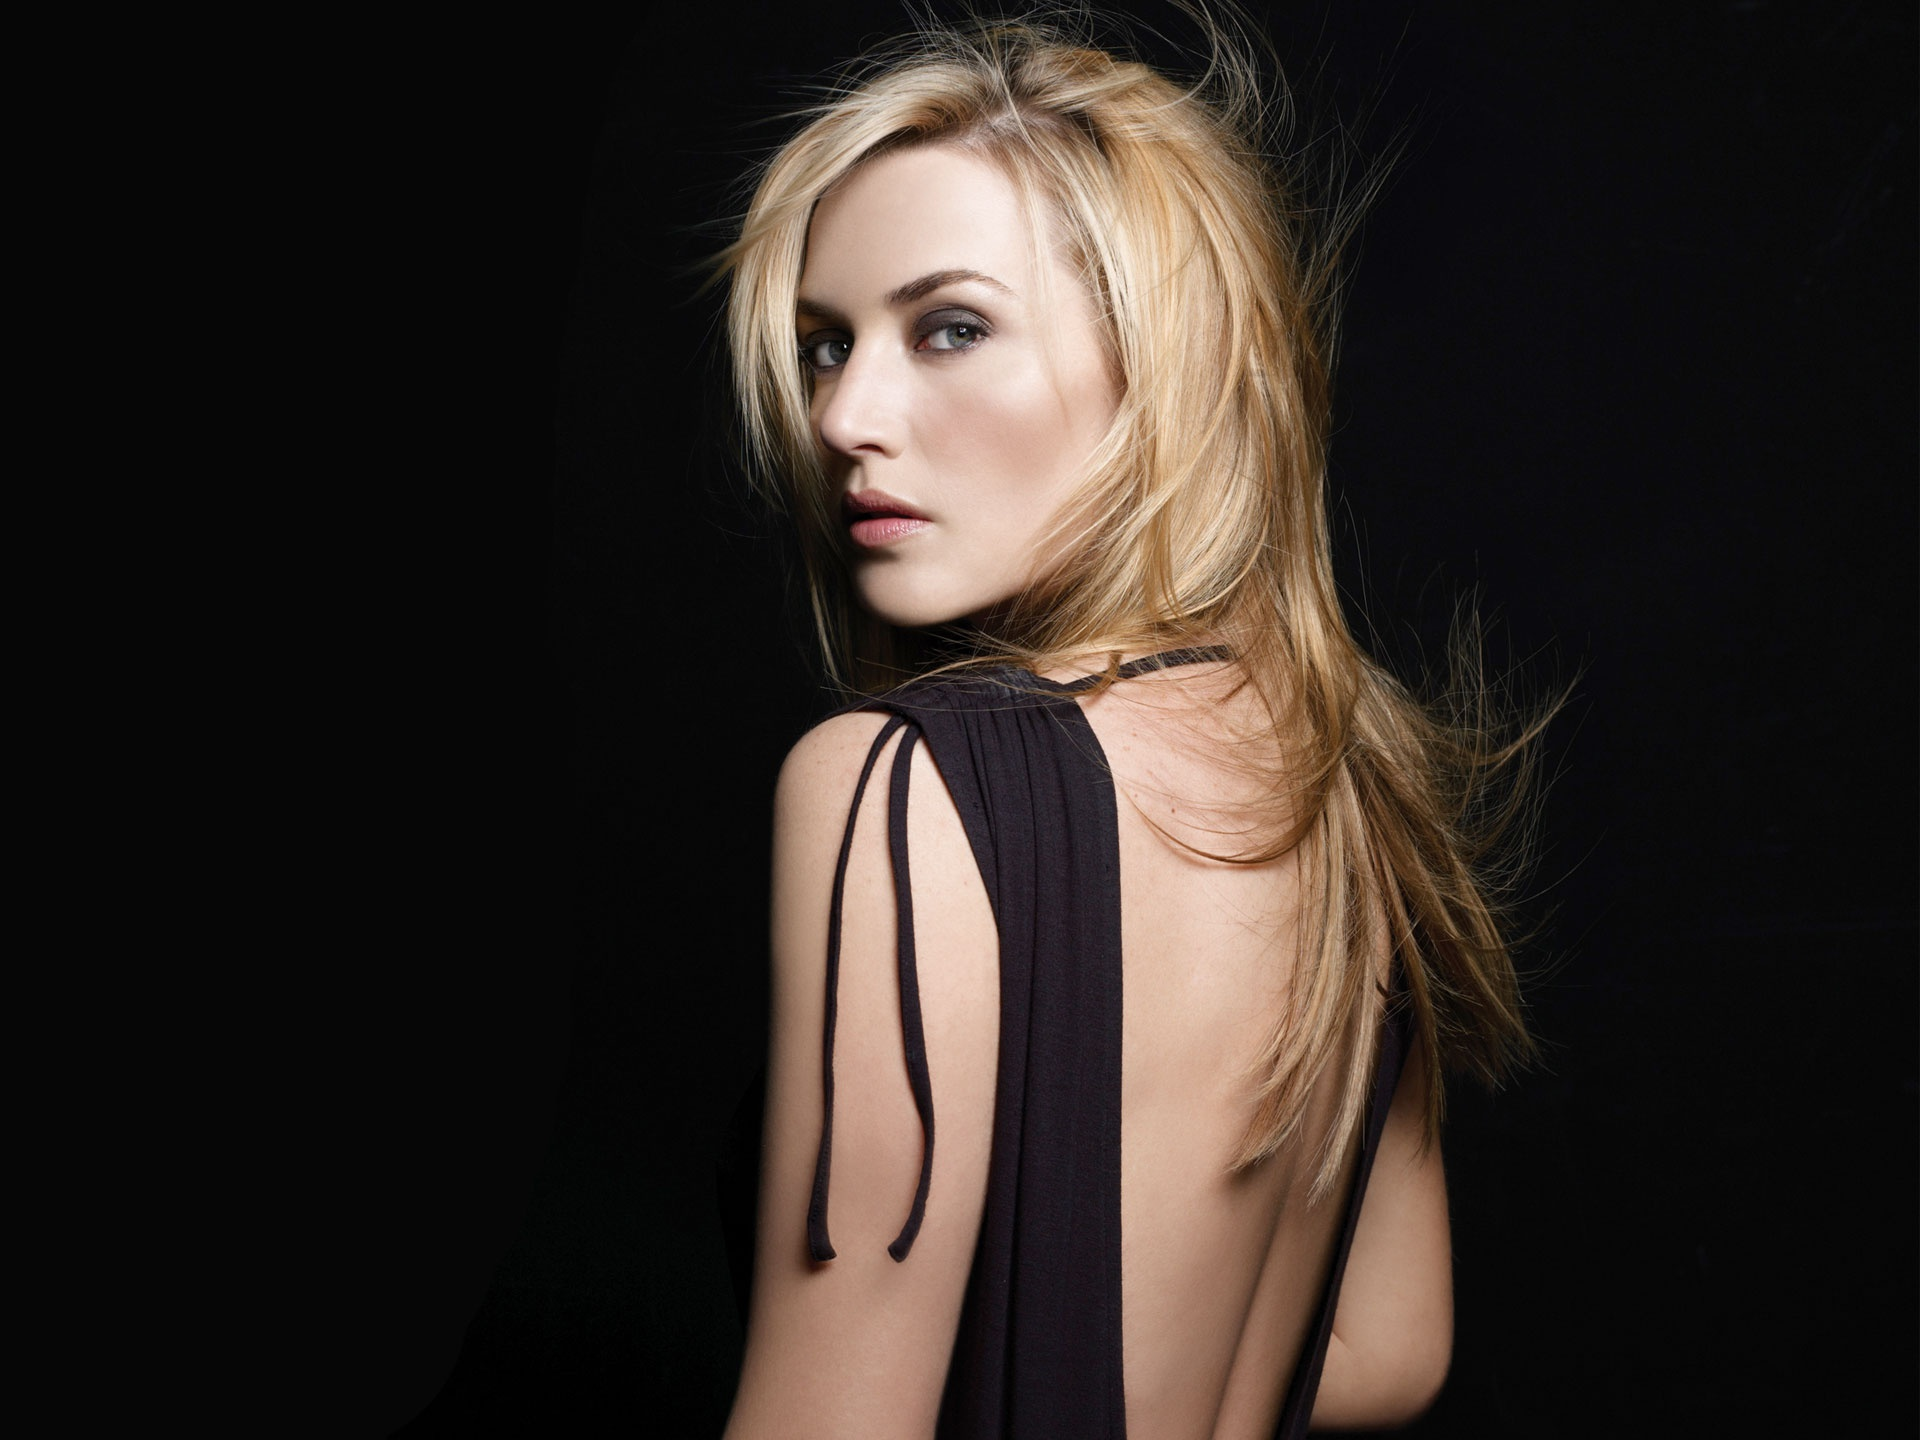 kate winslet wallpapers hd A1